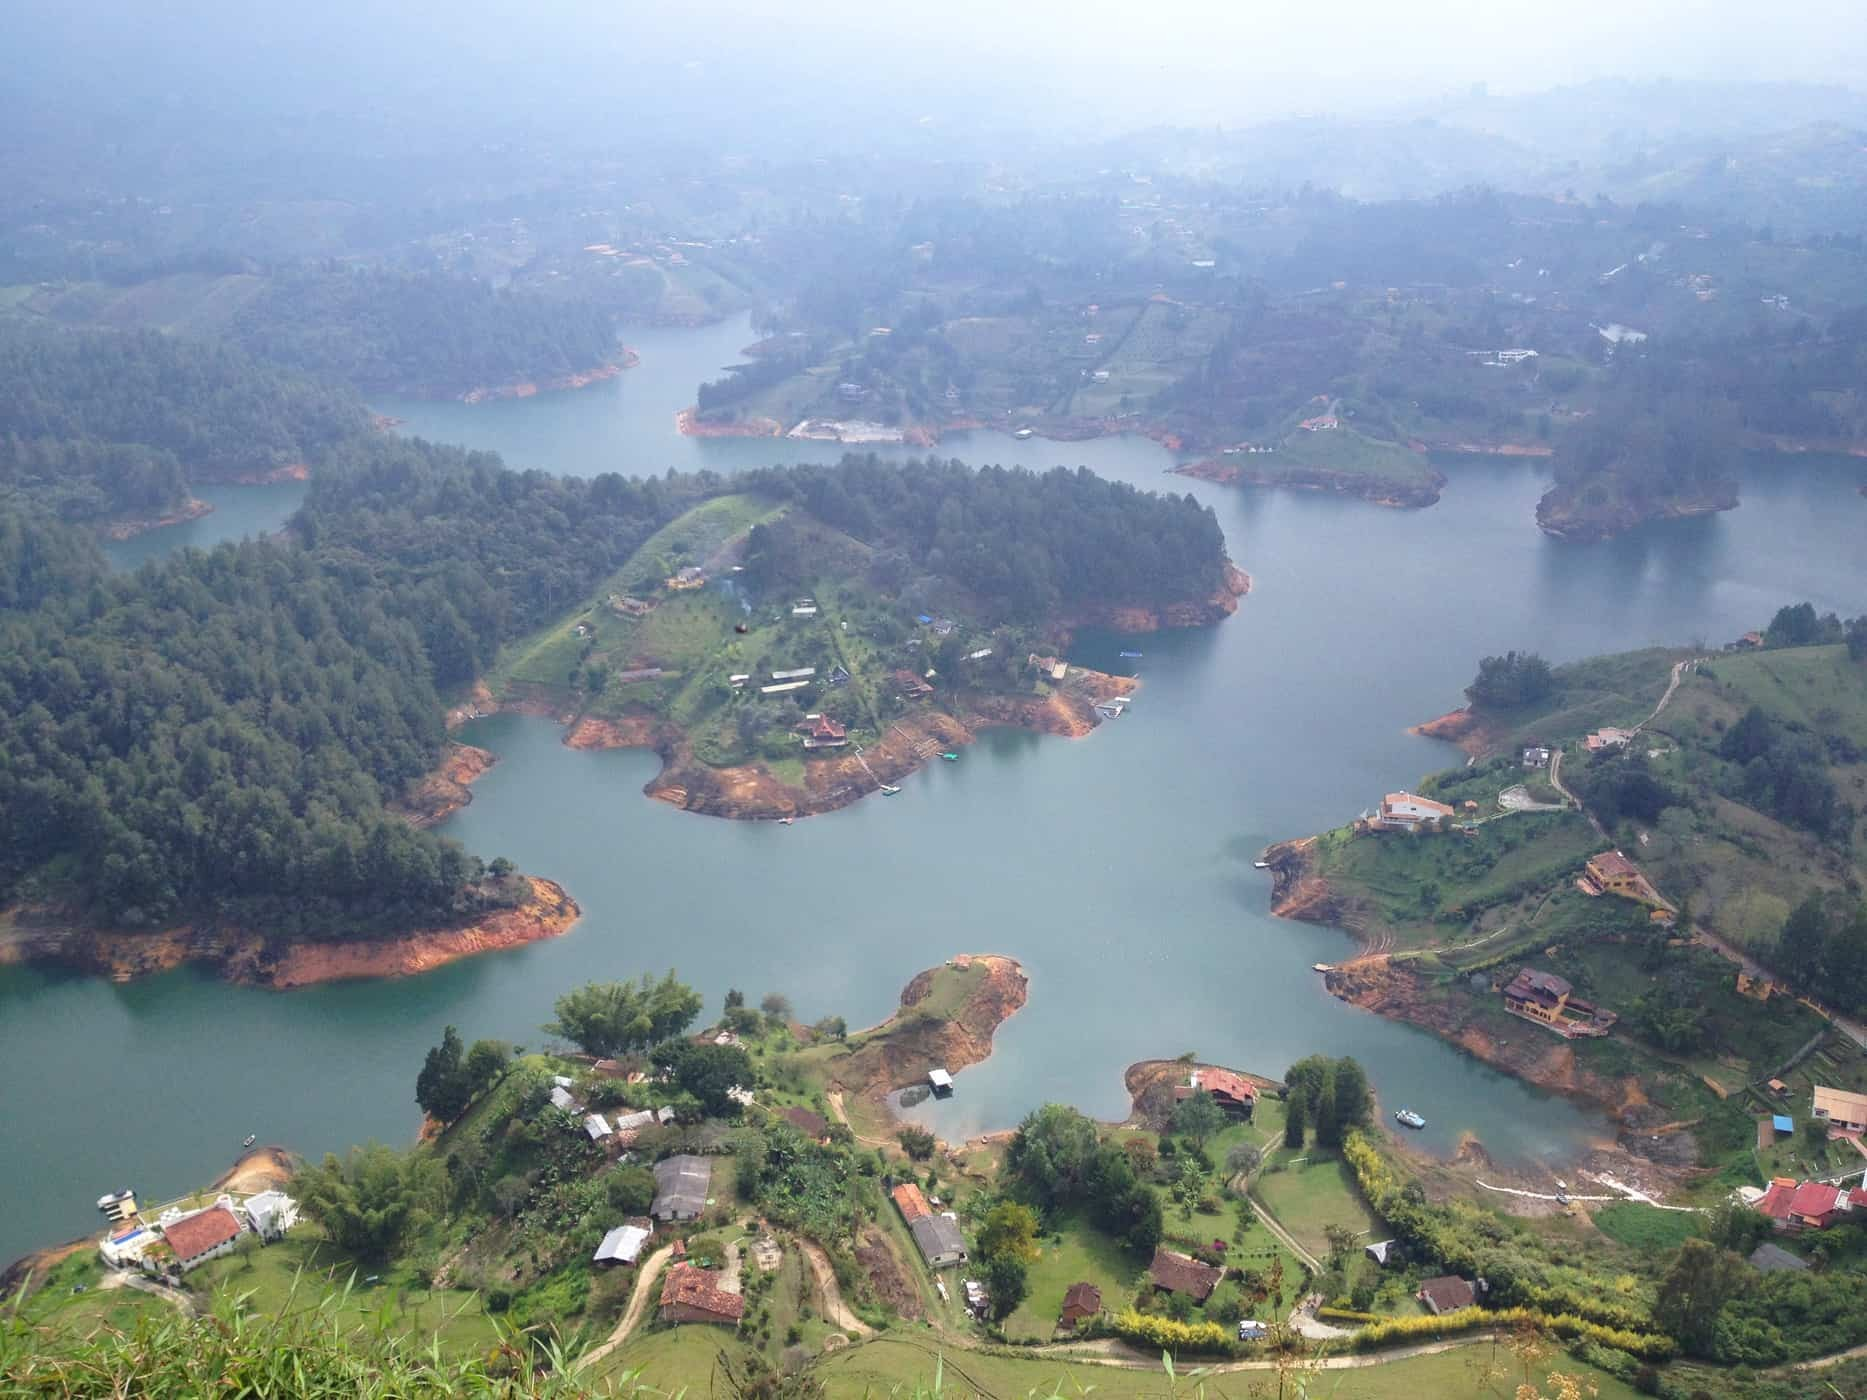 Guatapé Reservoir - The view from the top of El Peñol.